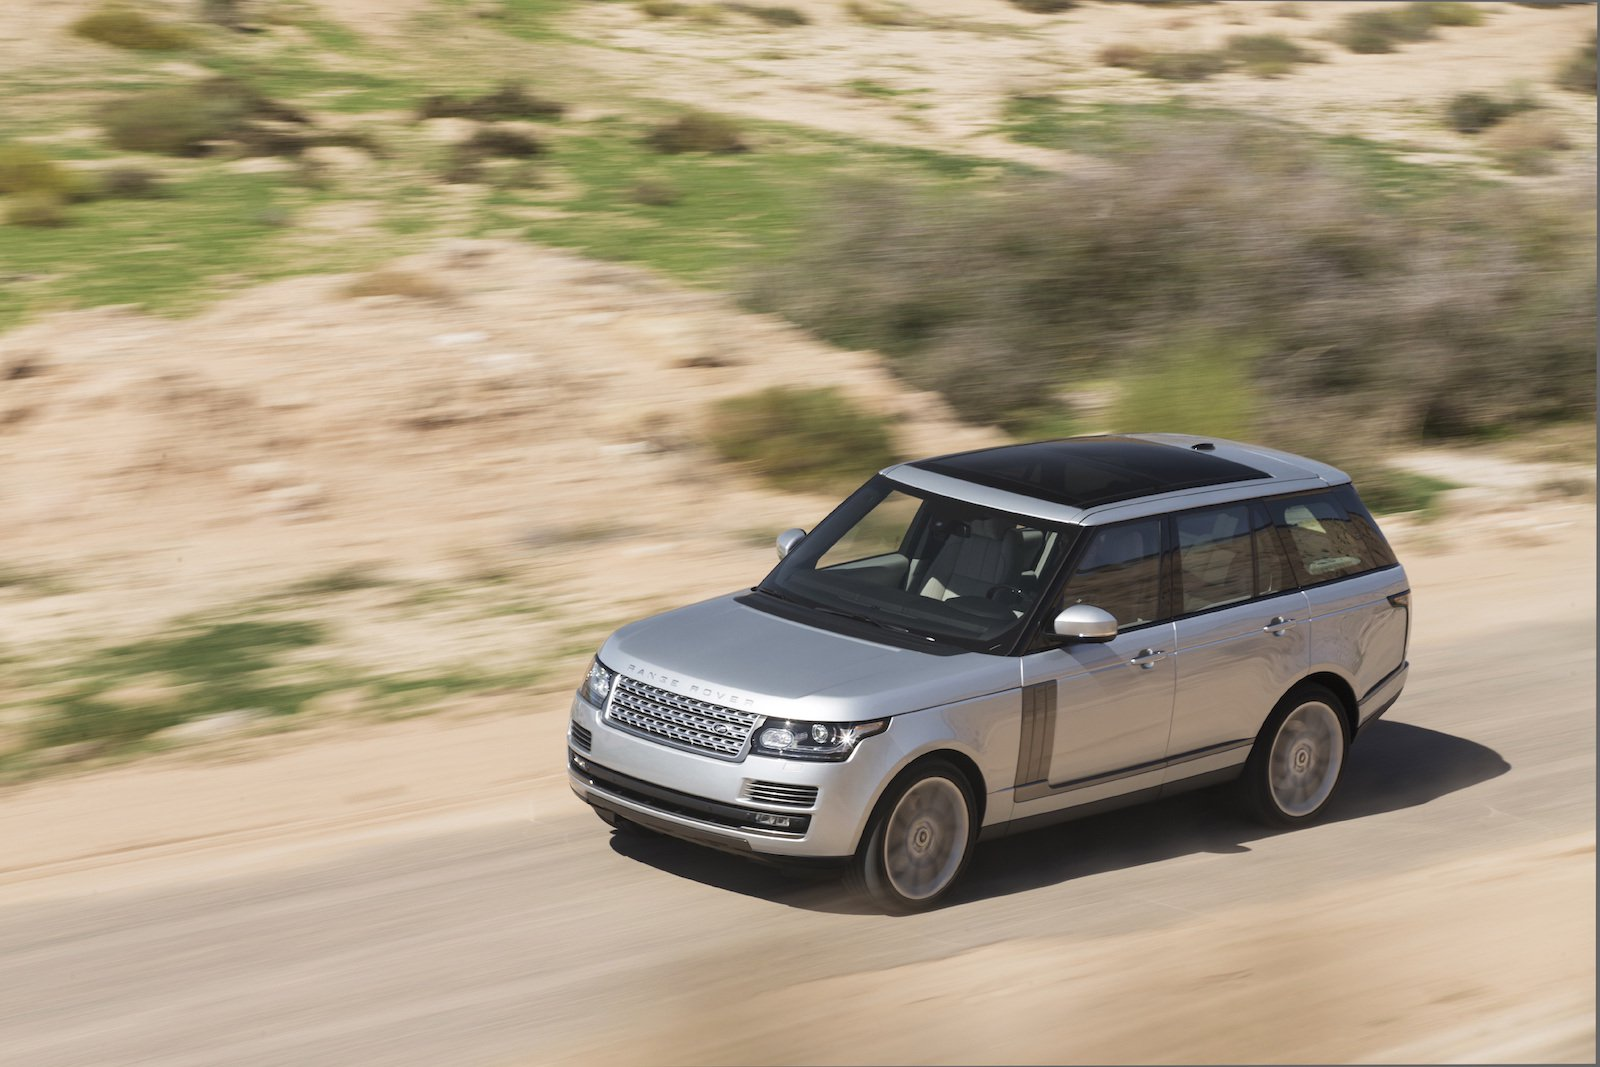 A Luxury Diesel? 2016 Land Rover Range Rover Td6 Review